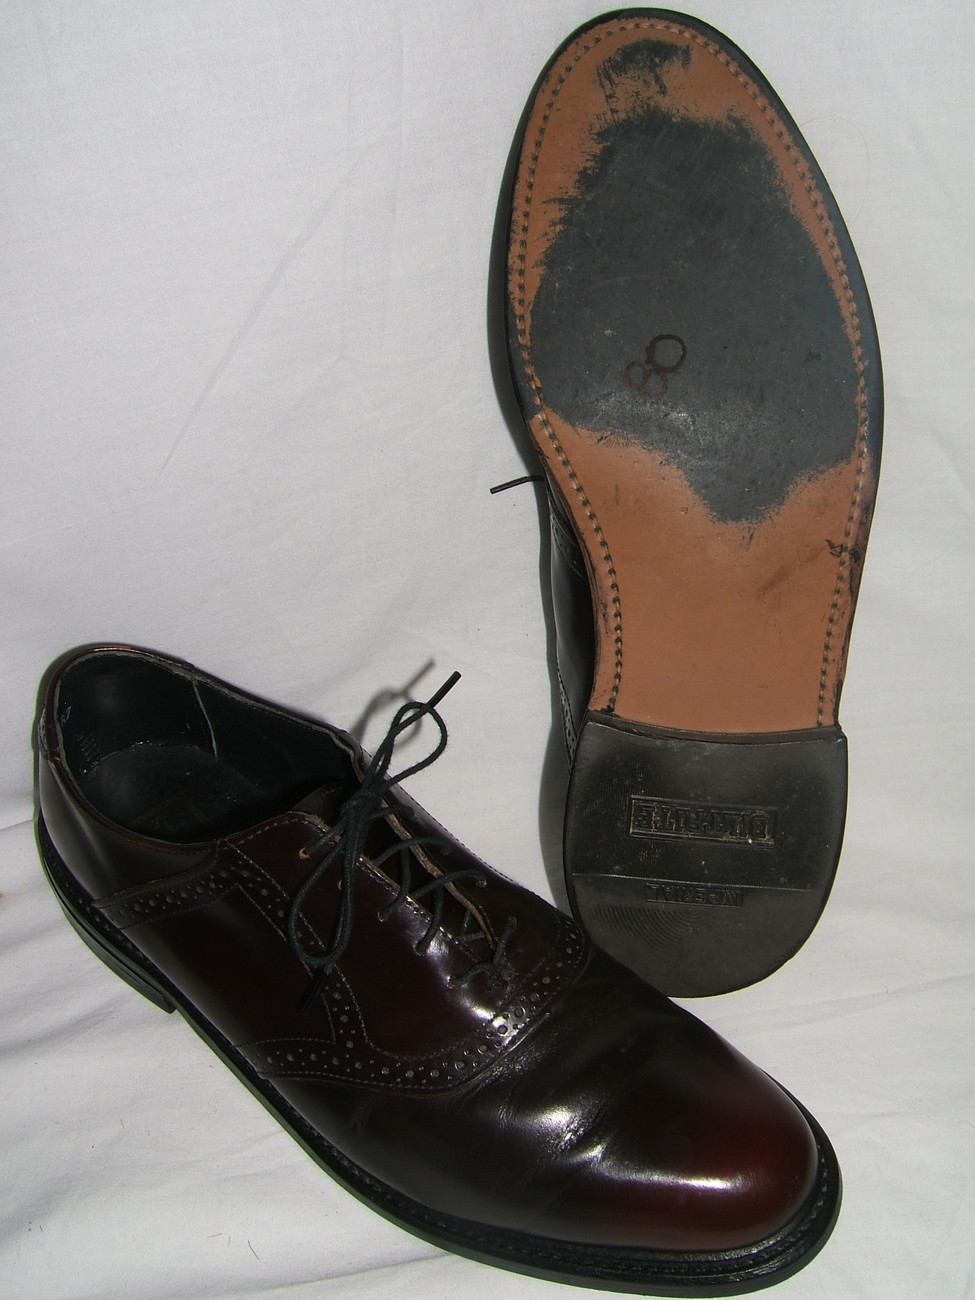 Primary image for STUART McGUIRE MADE IN USA BURNISHED CORDOVAN LEATHER WINGTIP SHOES--9 1/2 D